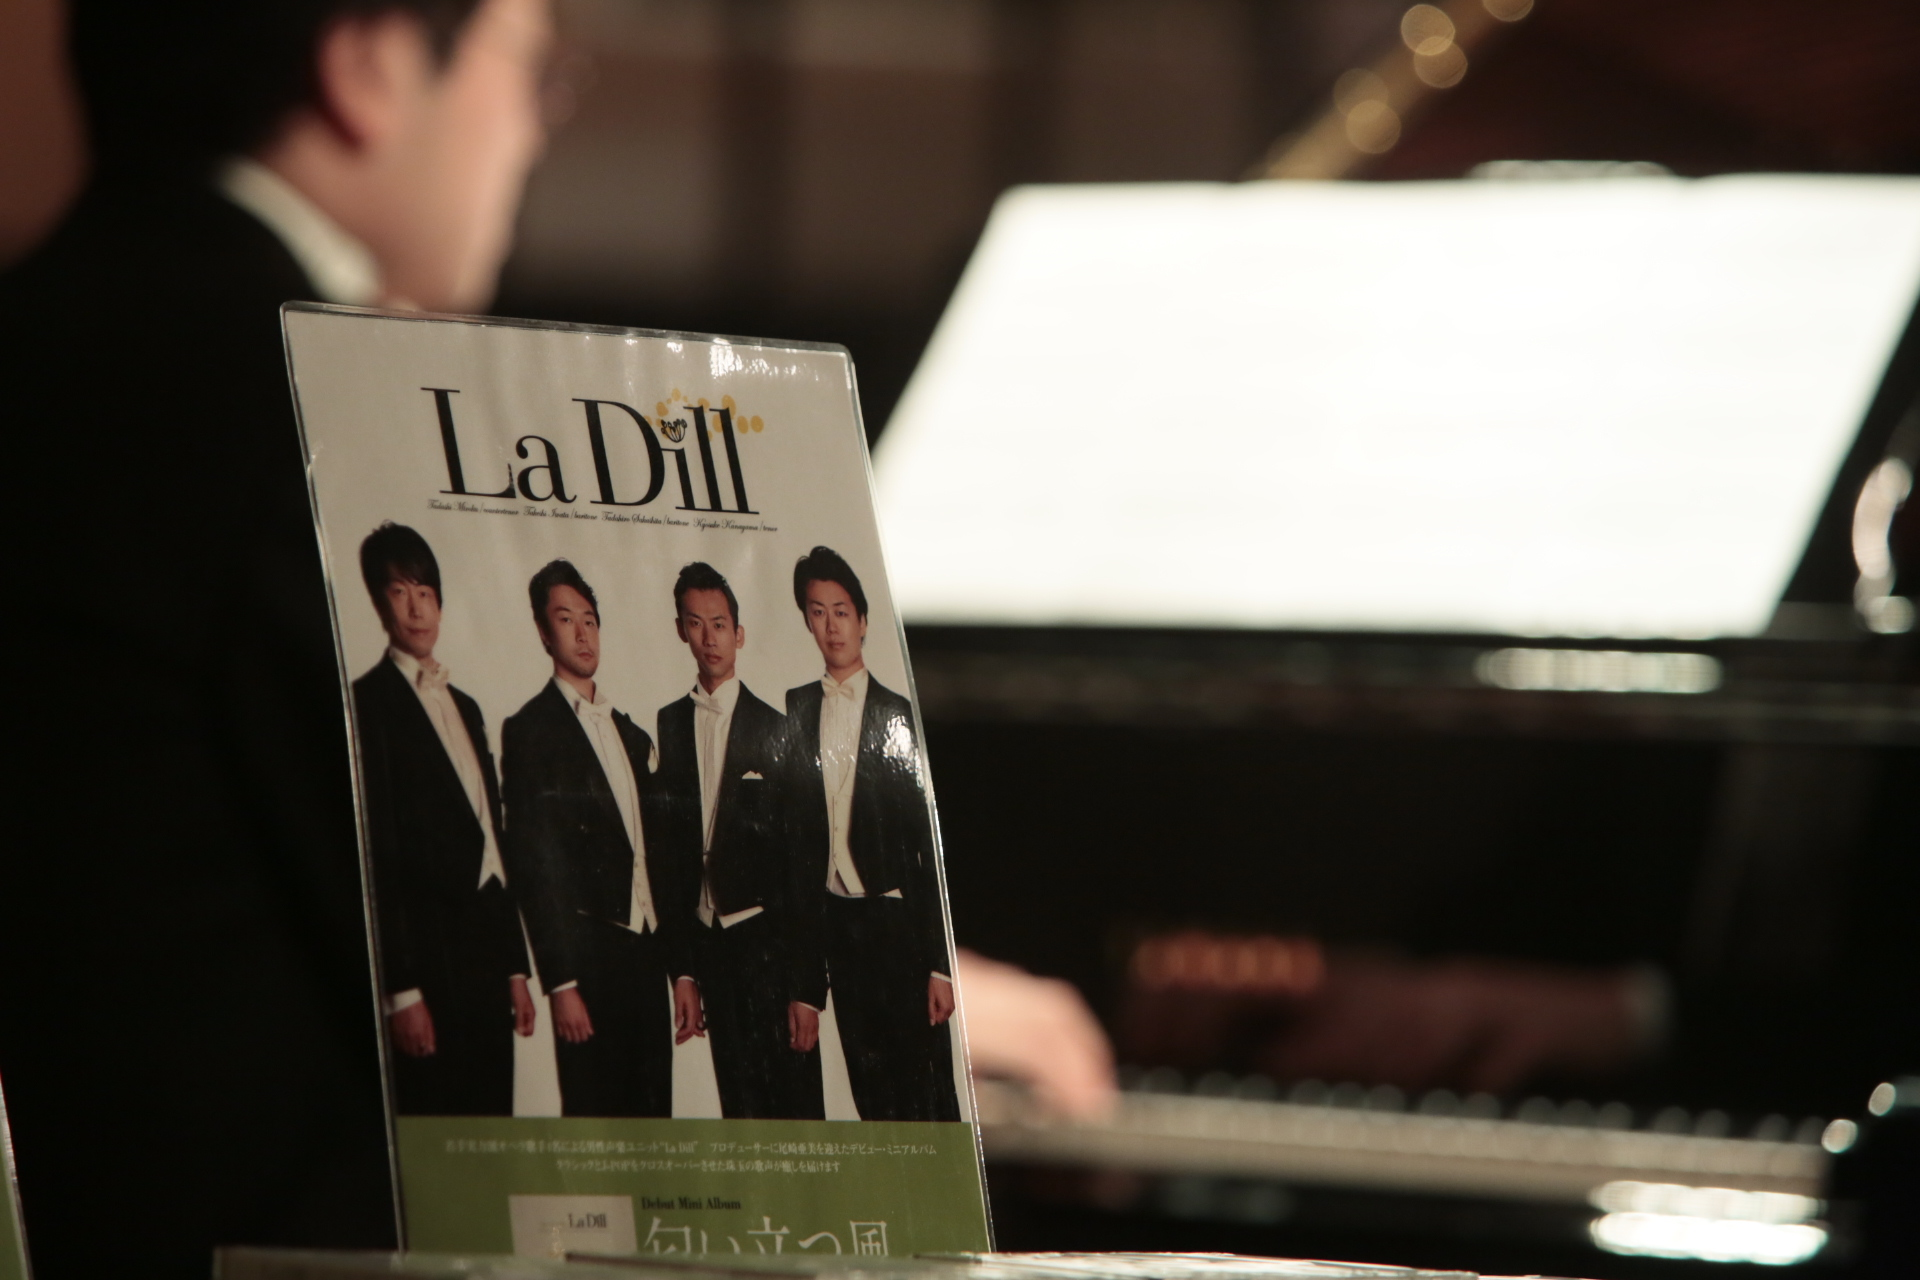 La Dill (撮影=寺坂ジョニー)